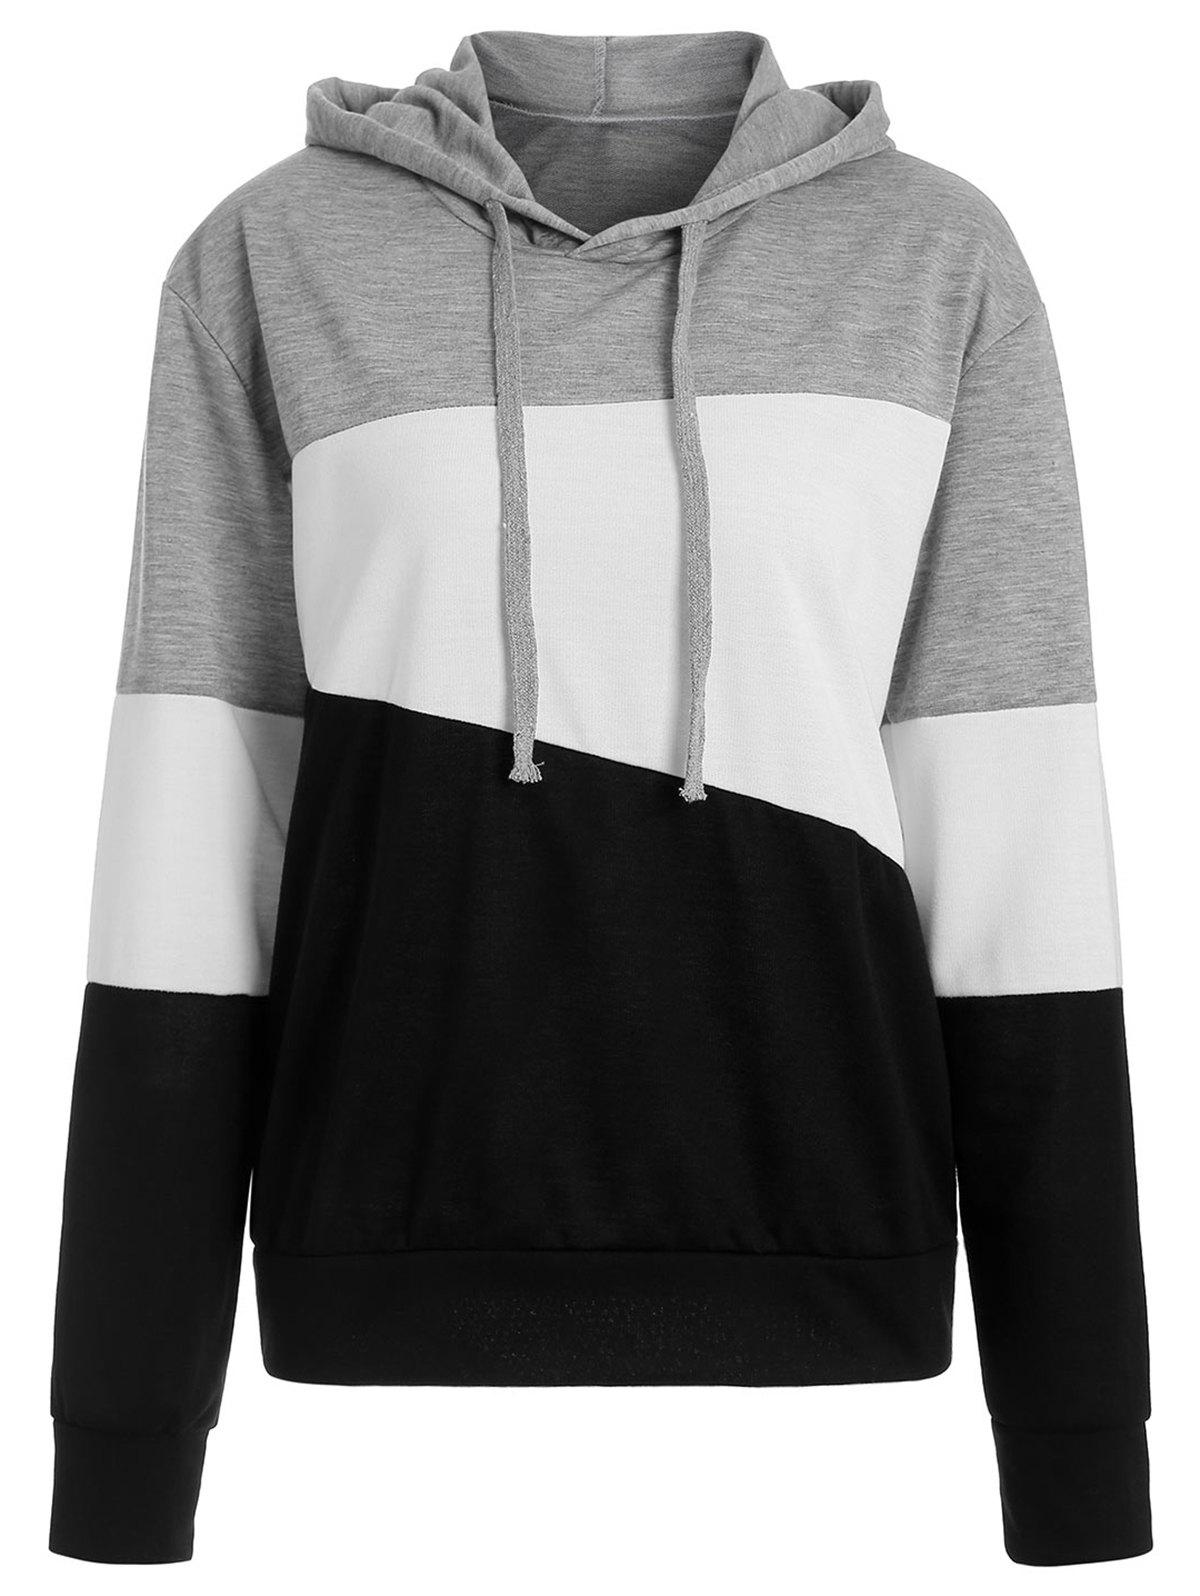 https://www.rosegal.com/sweatshirts-hoodies/pullover-drop-shoulder-hoodie-with-color-block-2402096.html?lkid=16127505